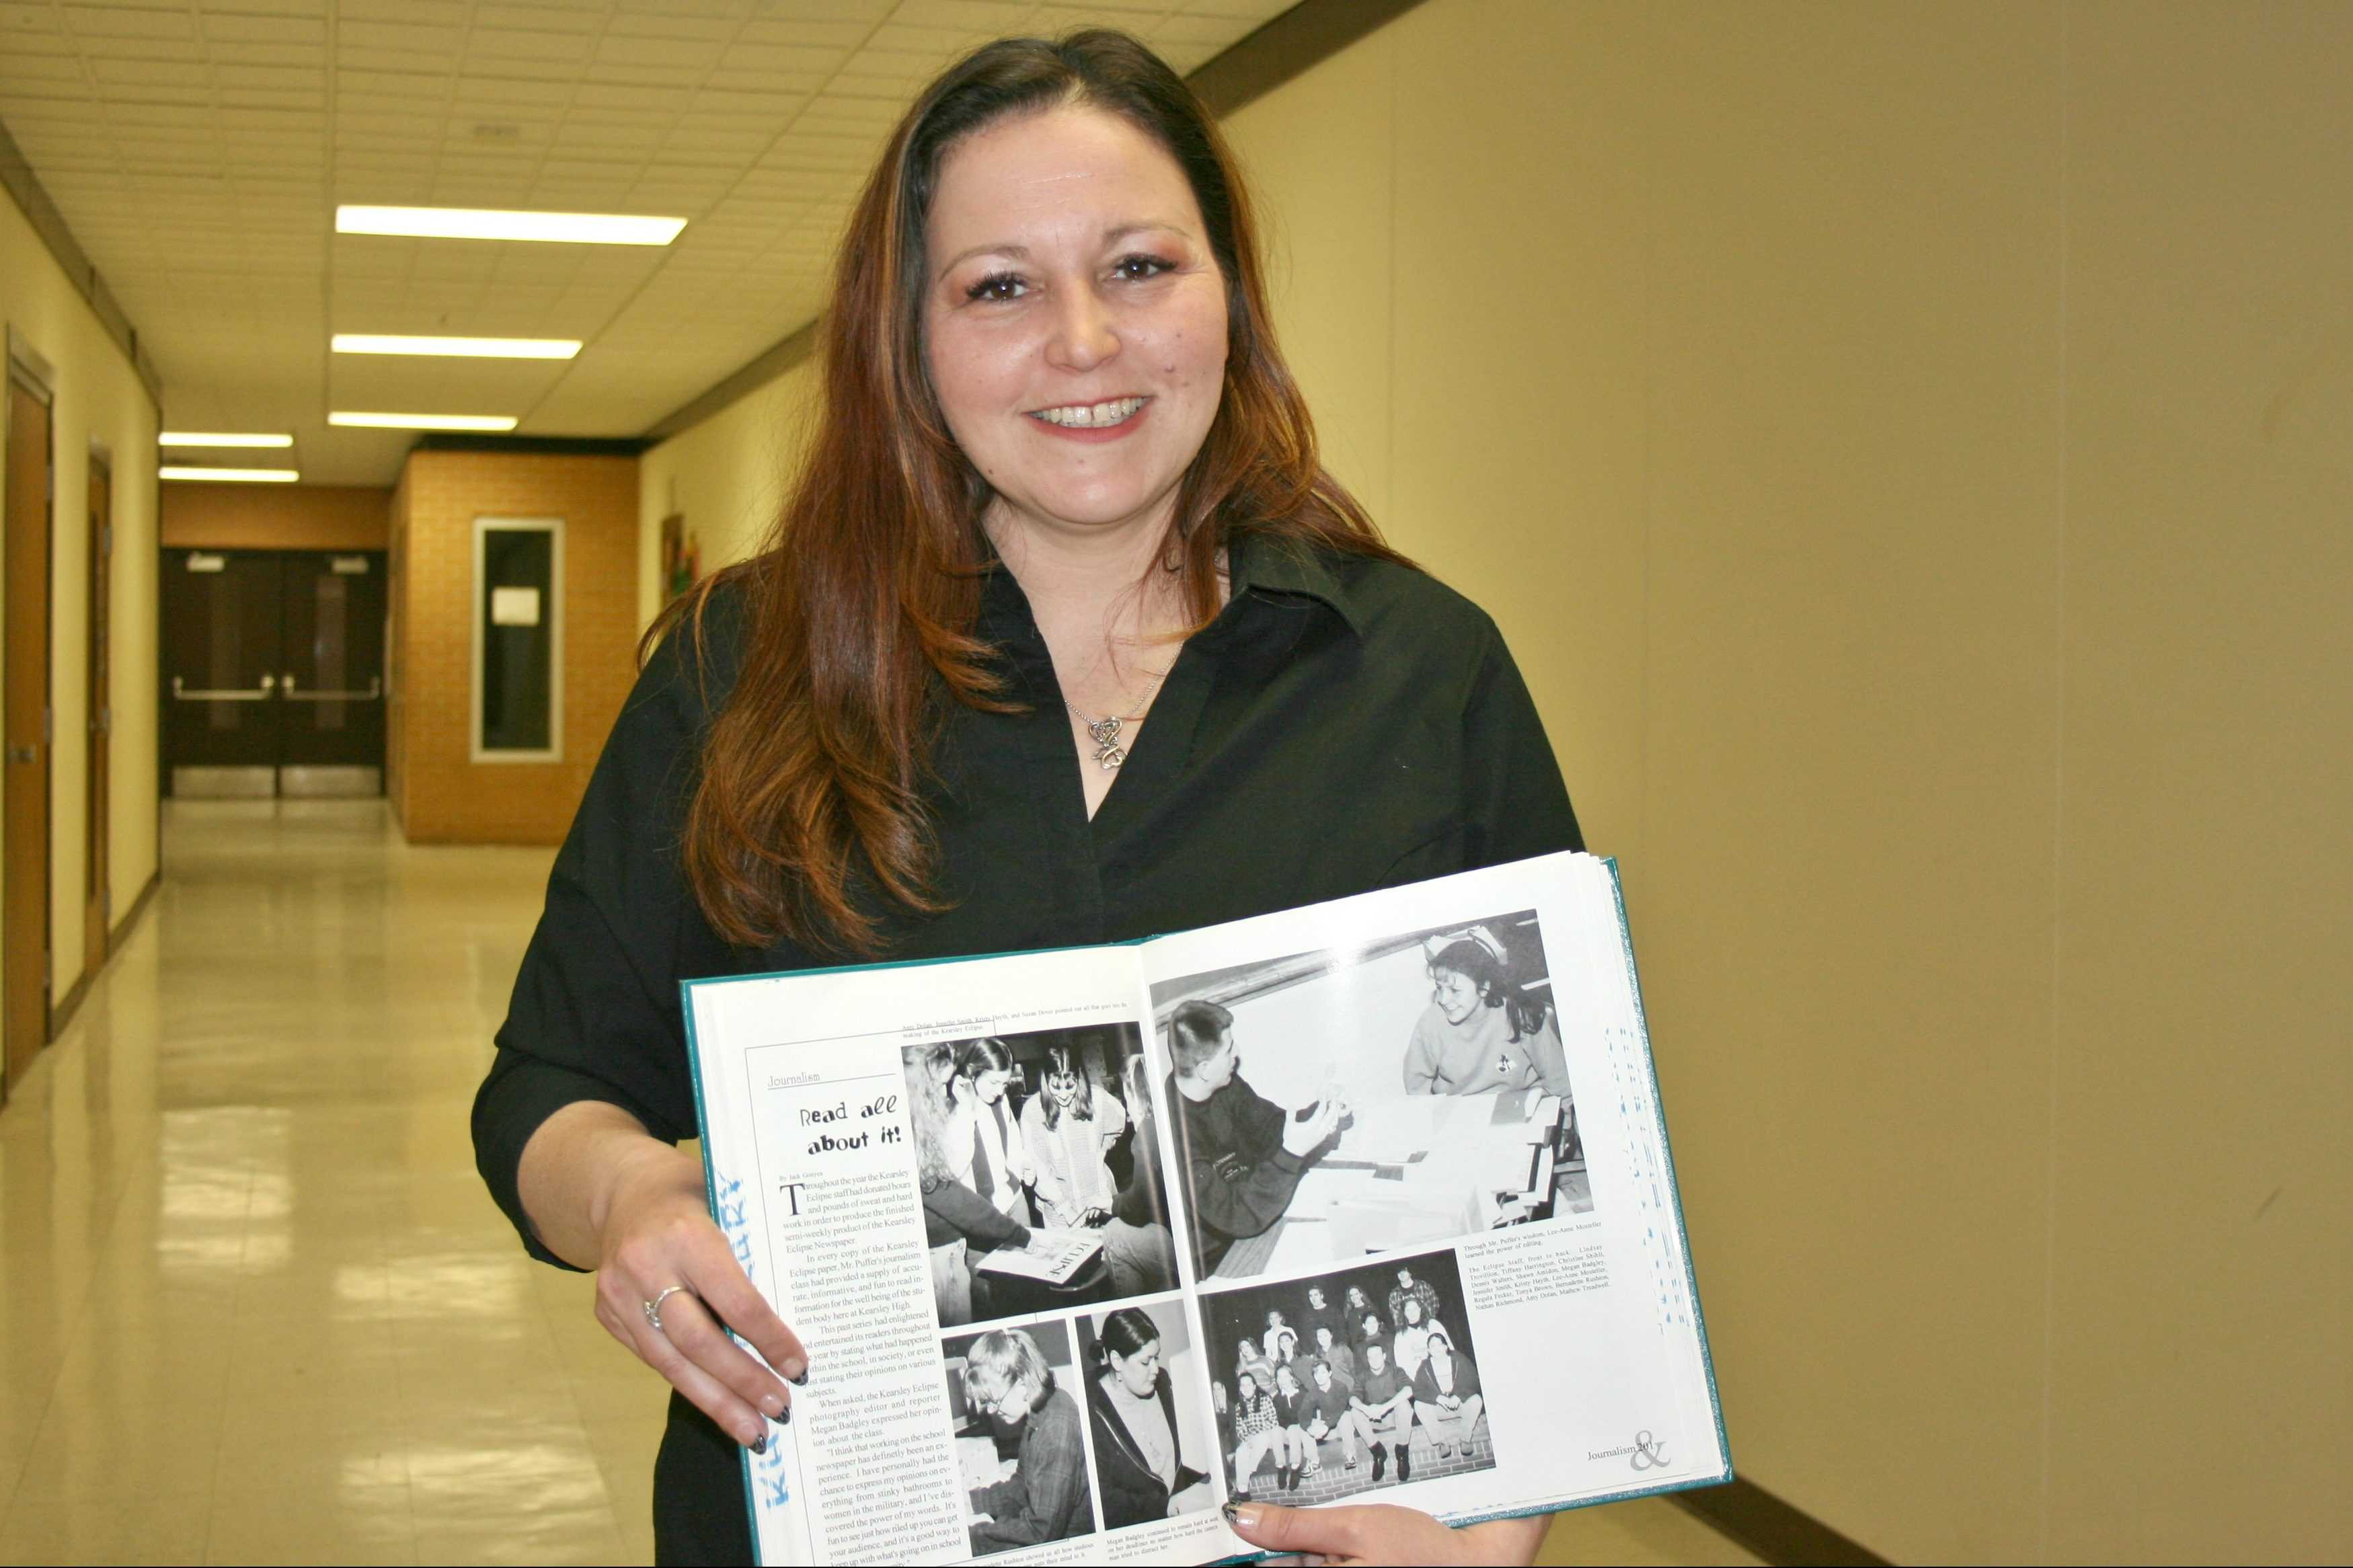 Mrs. LeeAnne Walters, a Kearsley alumna, holds her 1996 yearbook showing a picture of herself when she was an editor for The Eclipse.